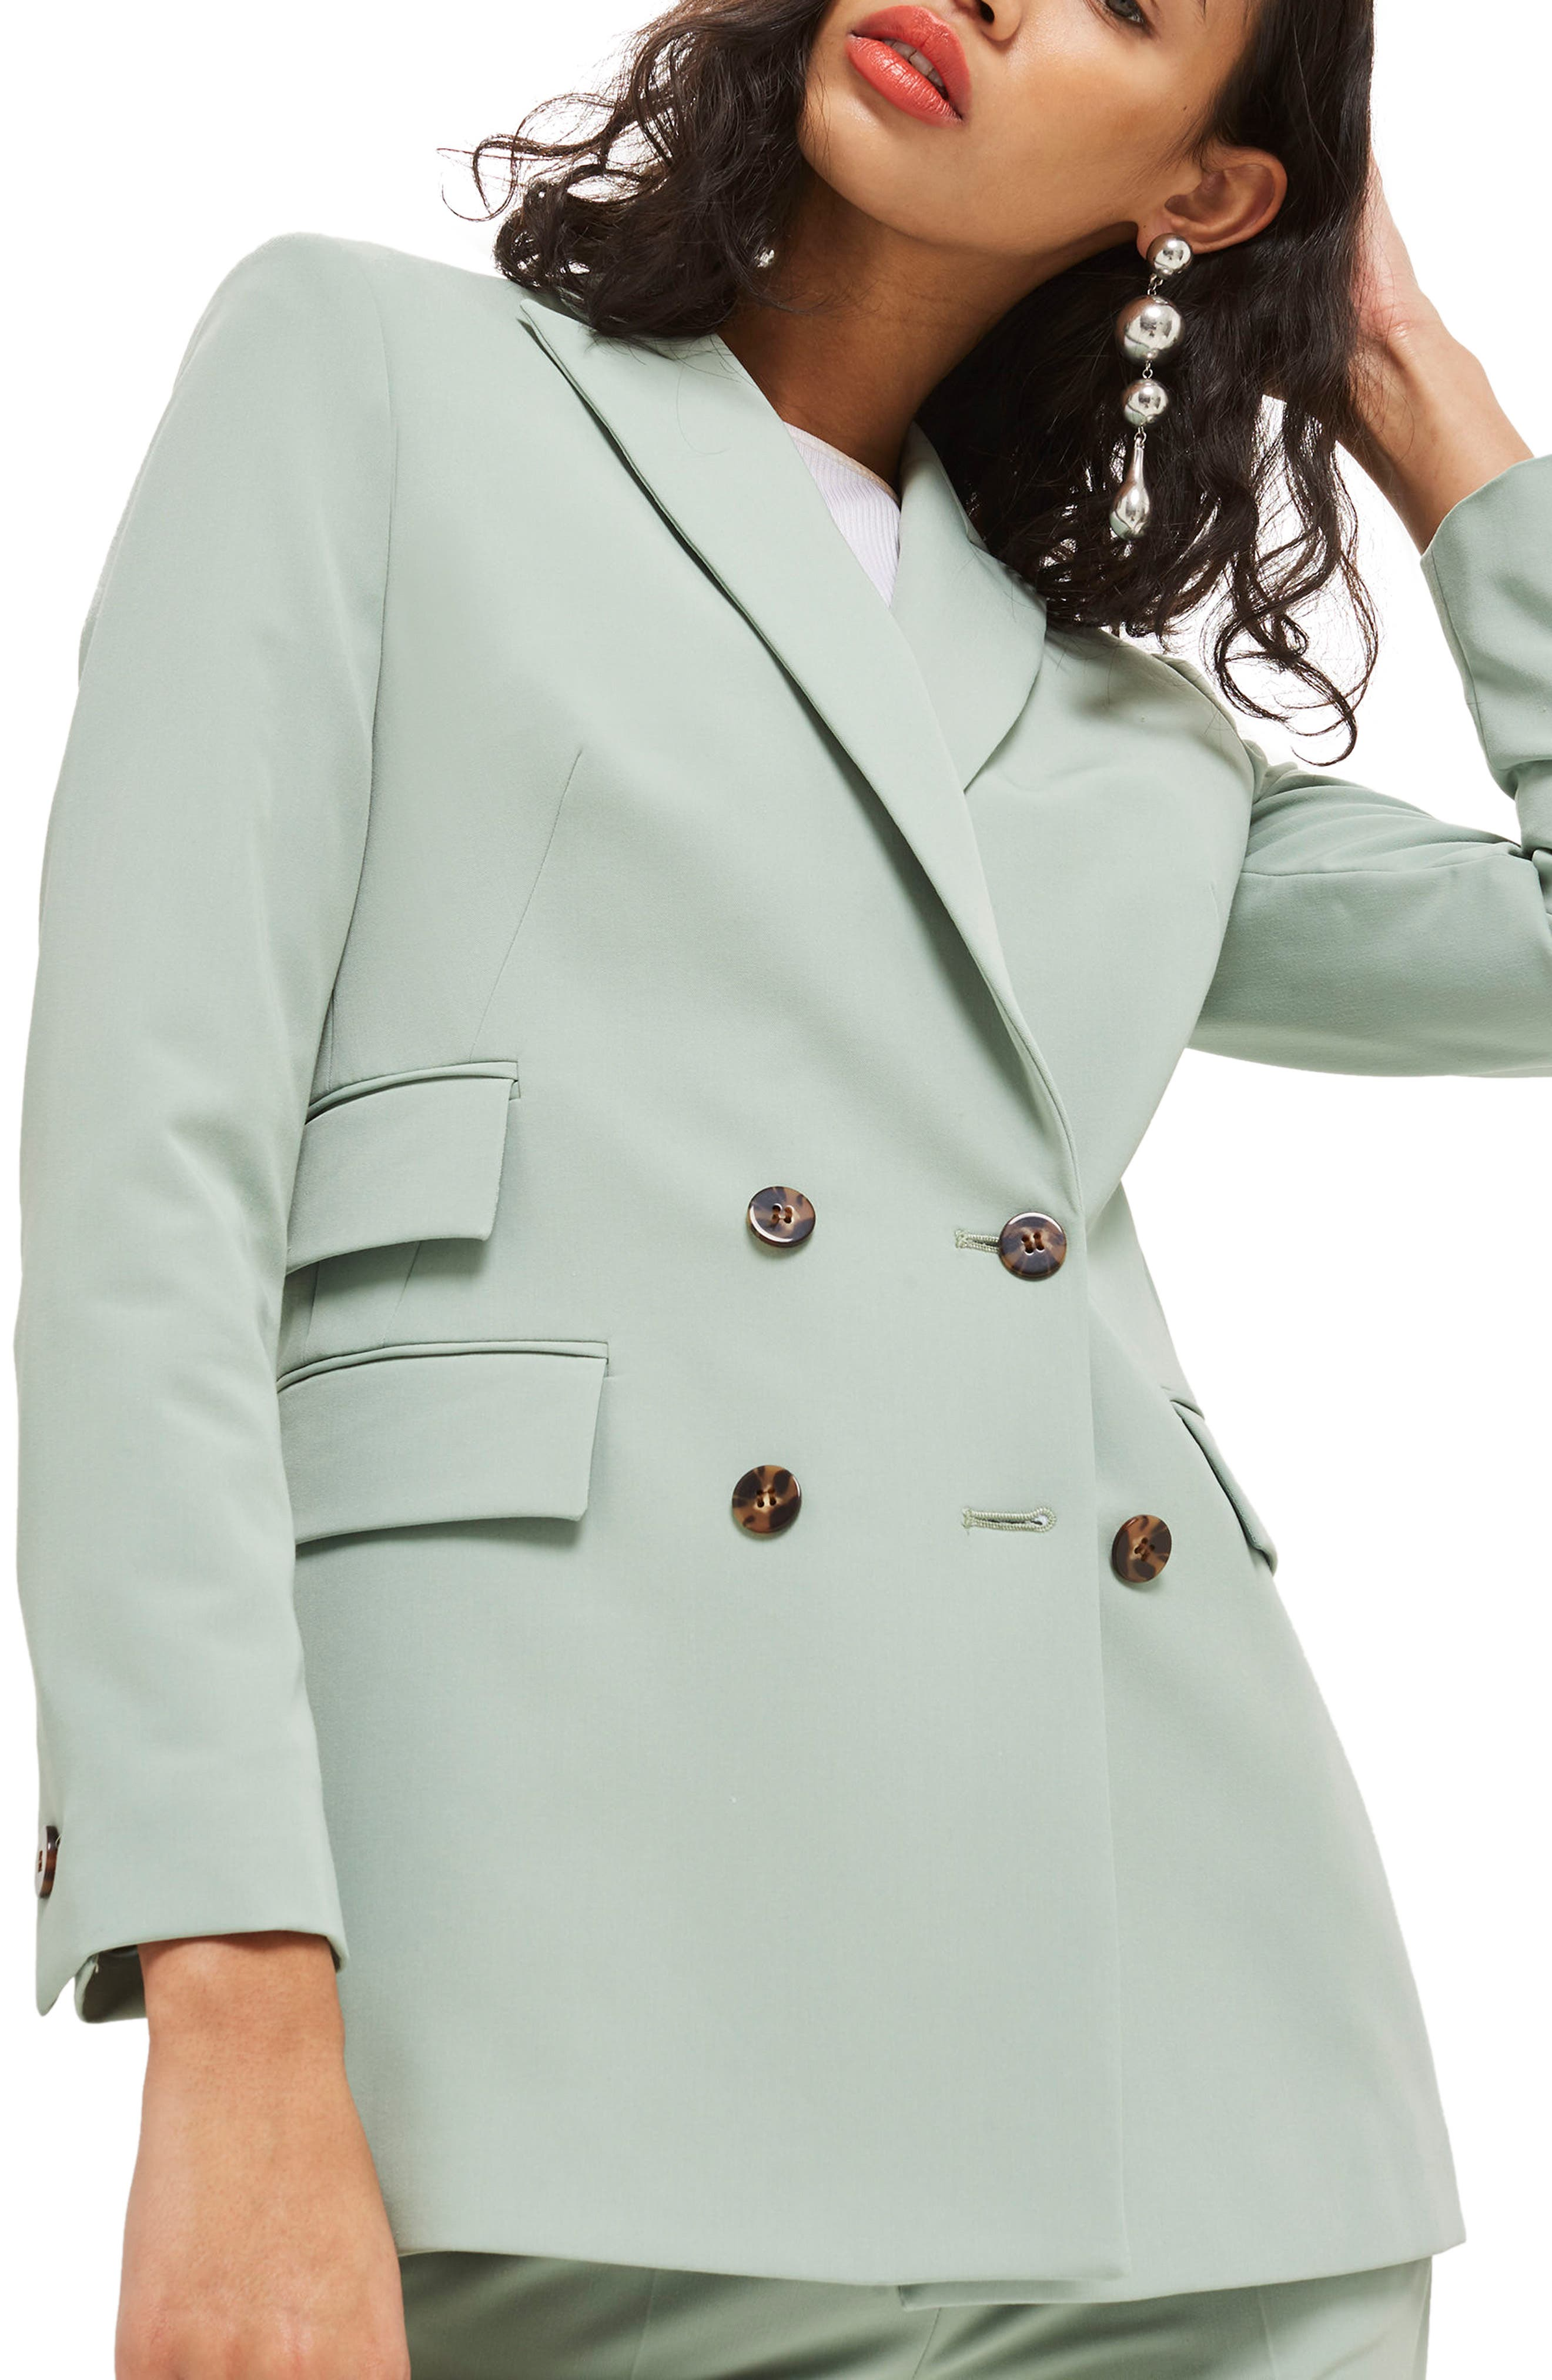 Topshop Longline Double Breasted Suit Jacket